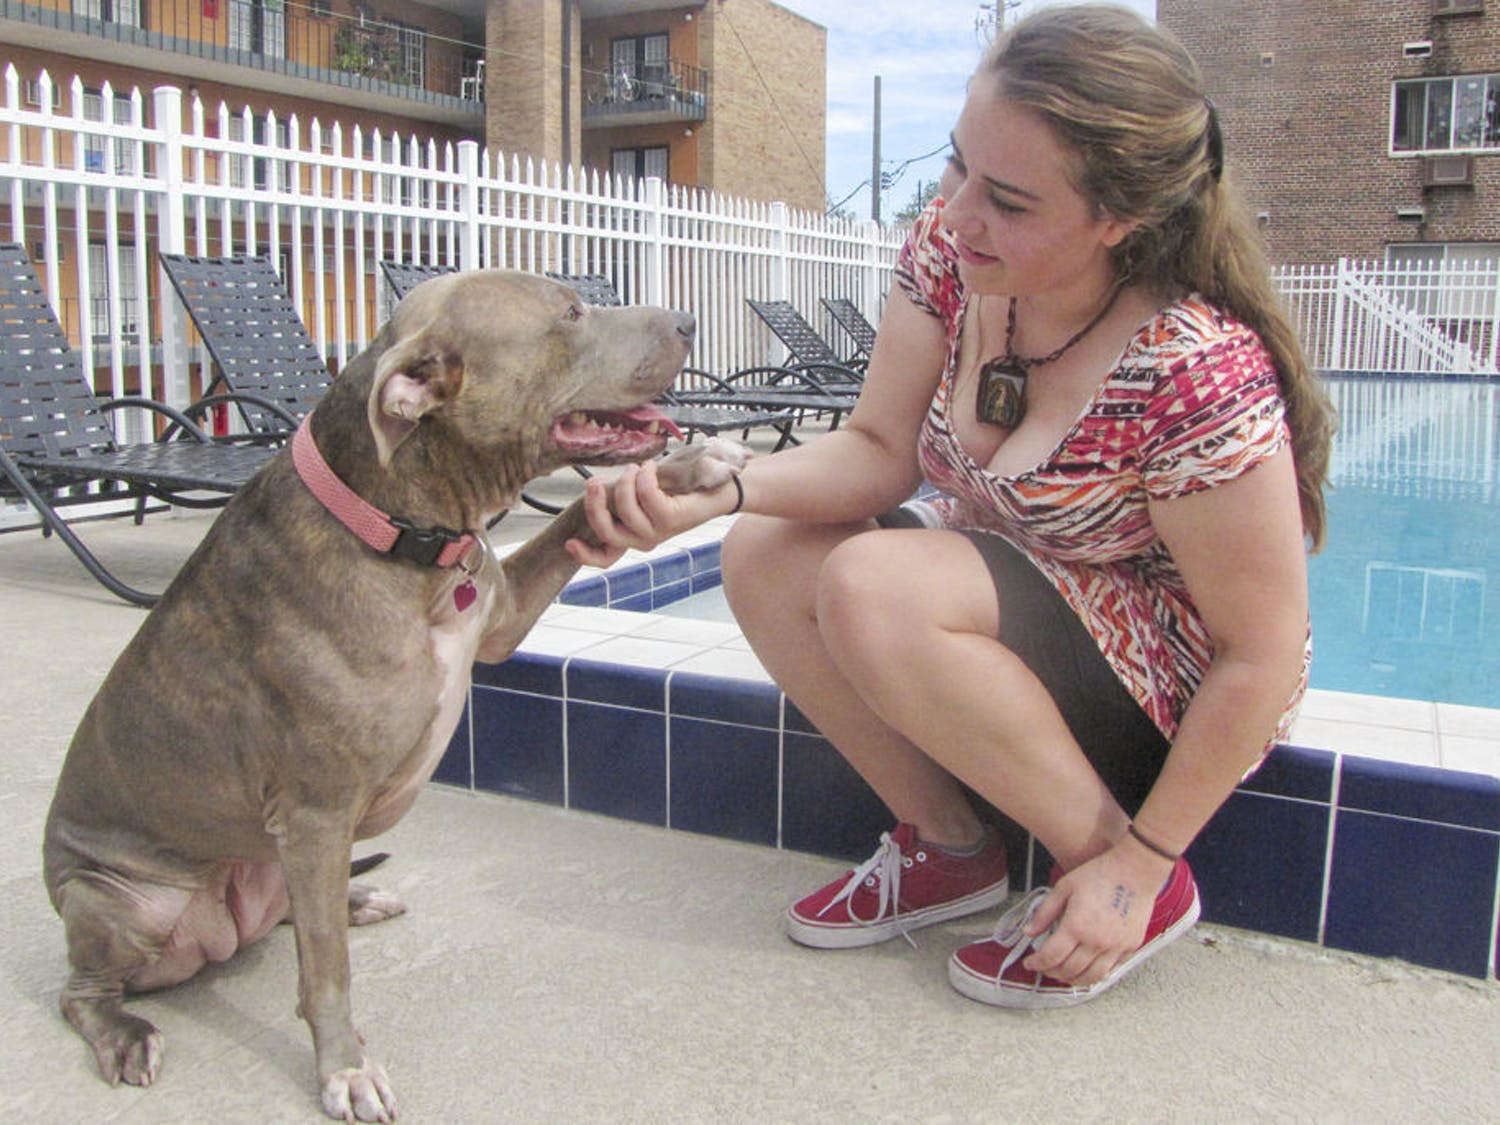 Four-year-old pit bull Stella plays with her foster owner, Plenty of Pit Bulls volunteer JoAnna Platzer, by the College Manor Apartments pool Wednesday afternoon. The organization is struggling to find pit bulls like Stella a home before their foster owners go out of town for the holidays.